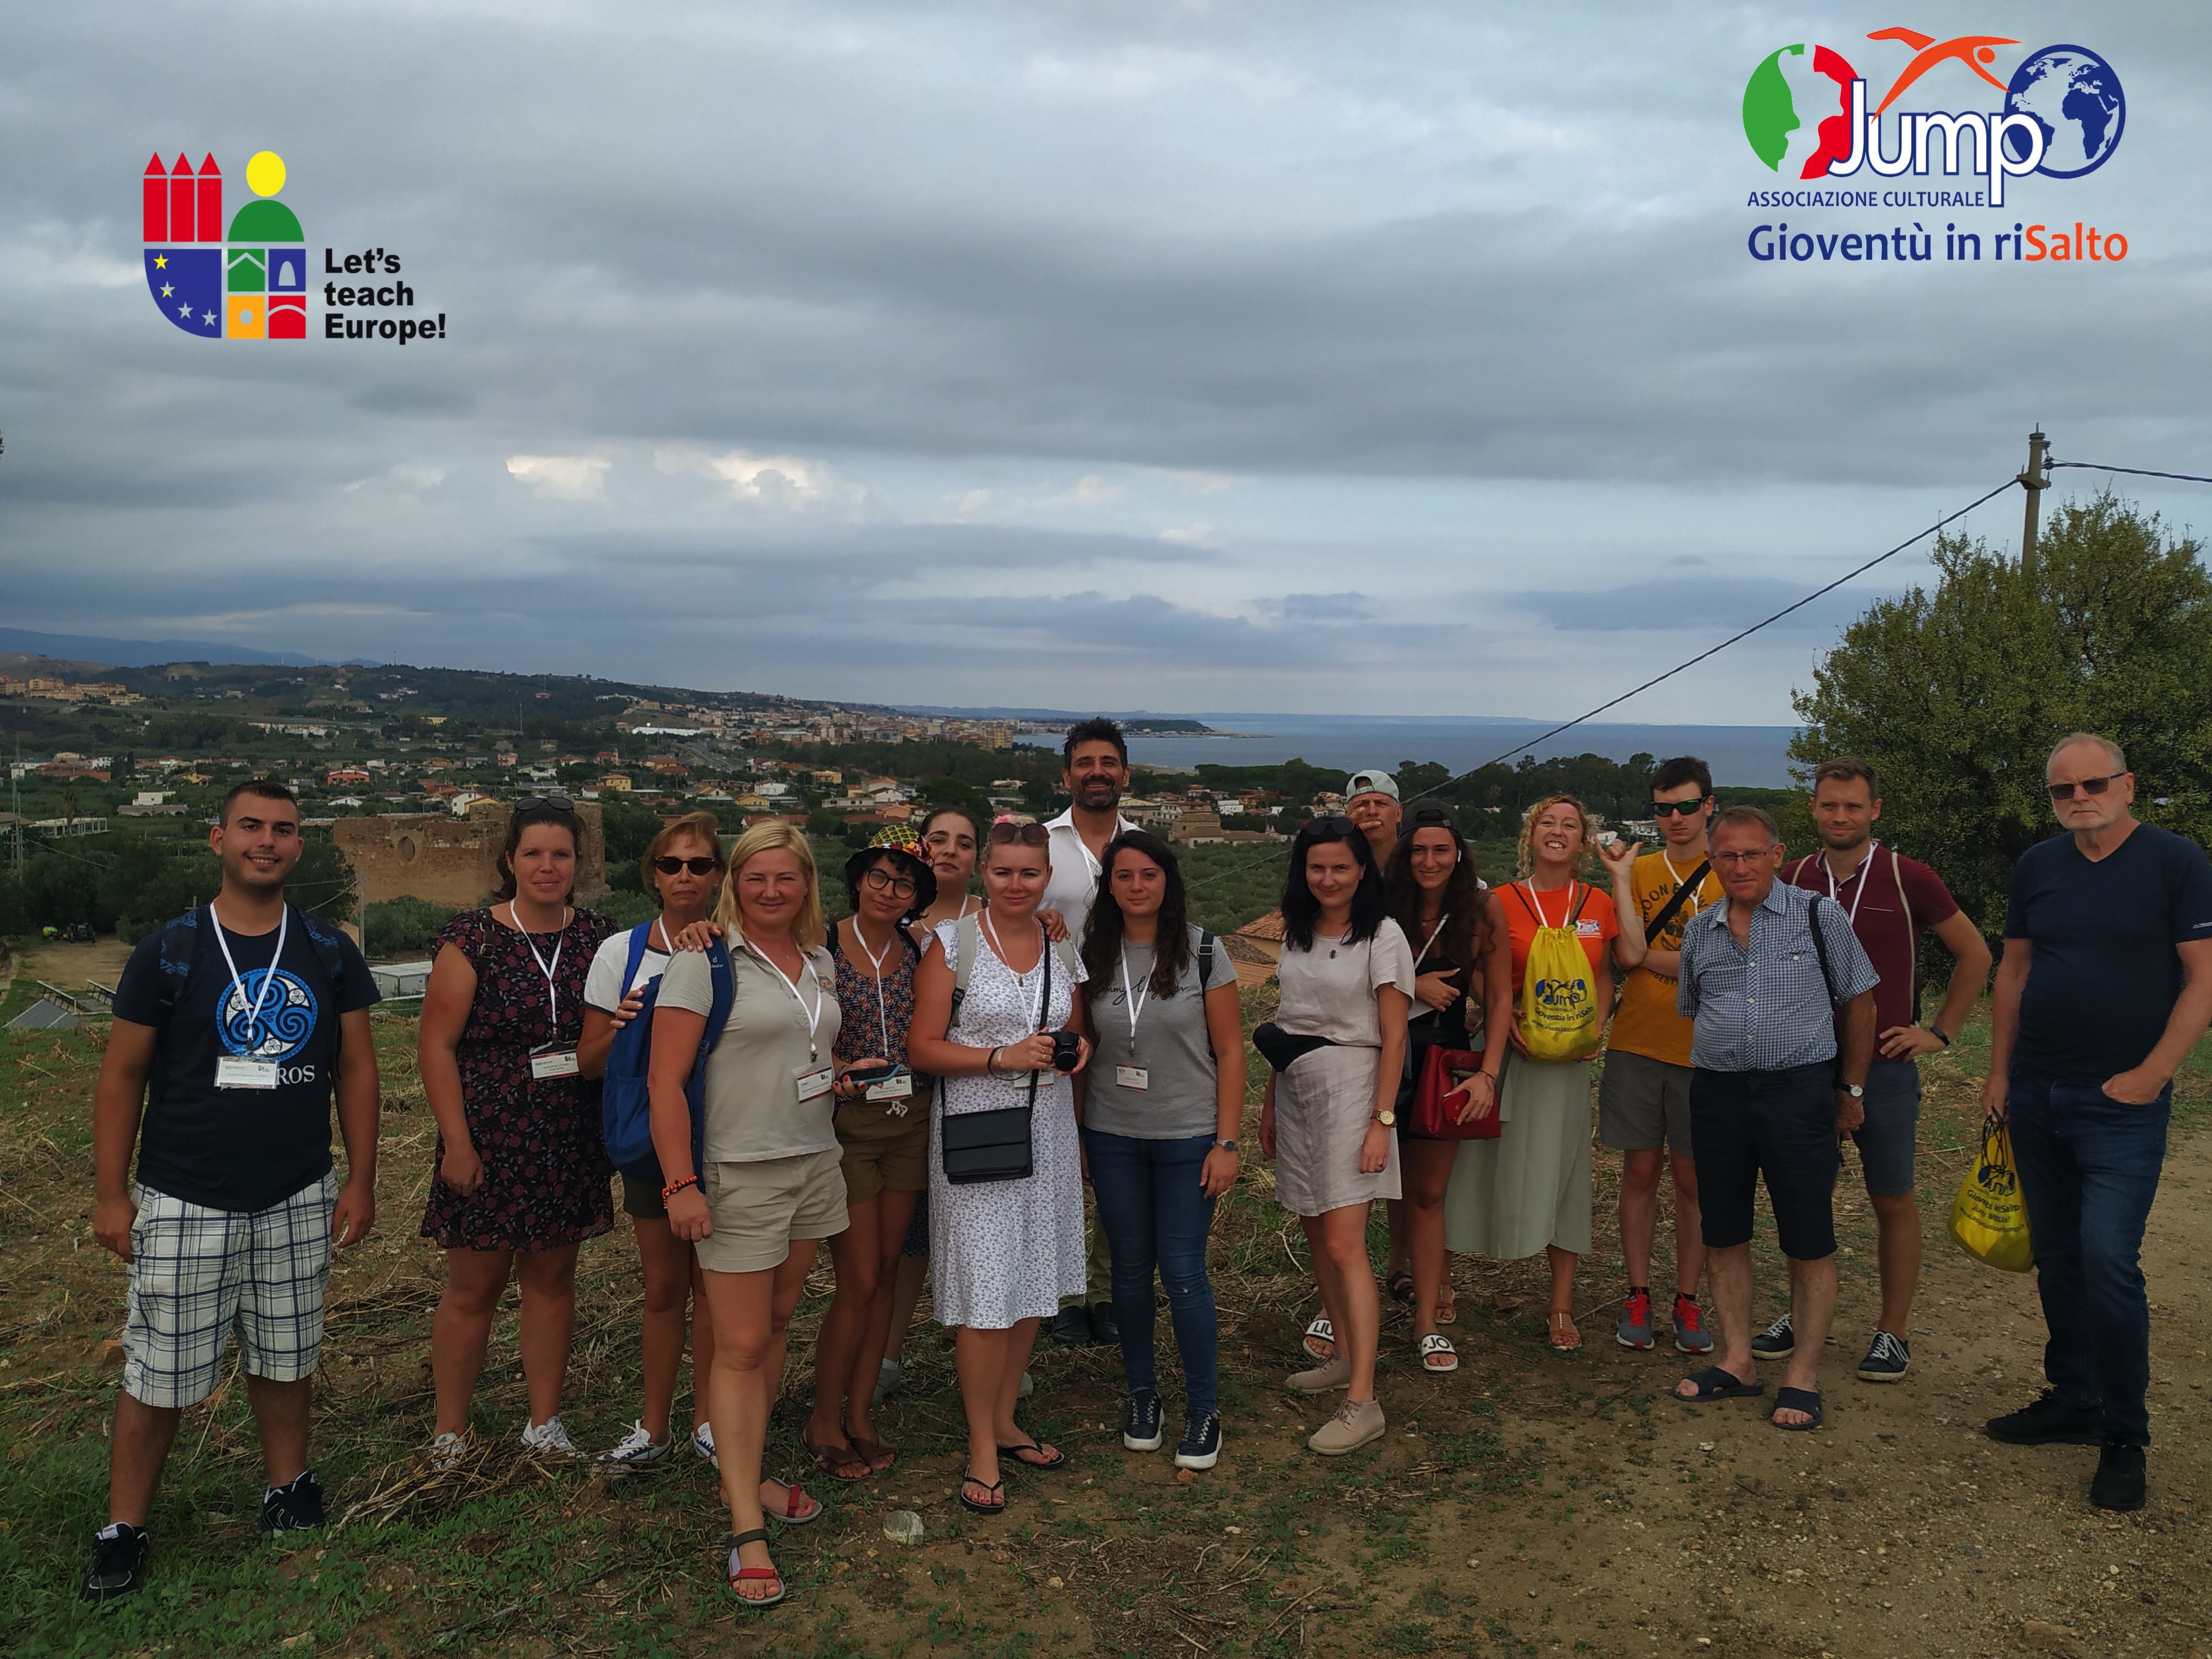 After a year of covid lockdowns: LTT 1 realized in Italy! The full experience of our delegations in the Calabria region